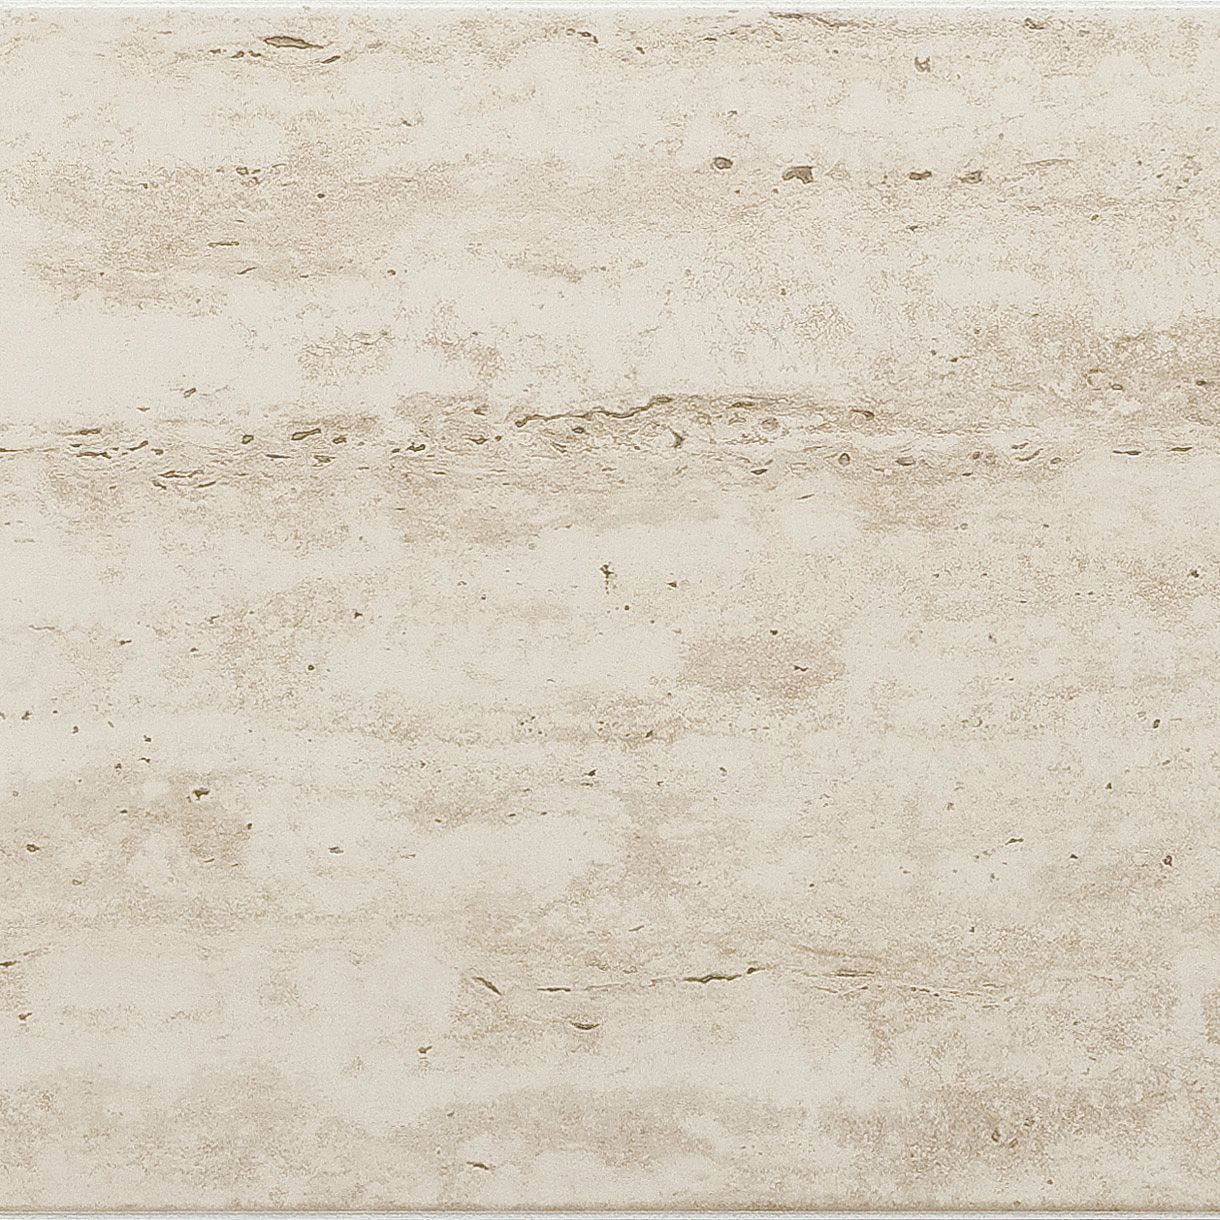 Leggiero Cream Travertine Tile Effect Laminate Flooring 0